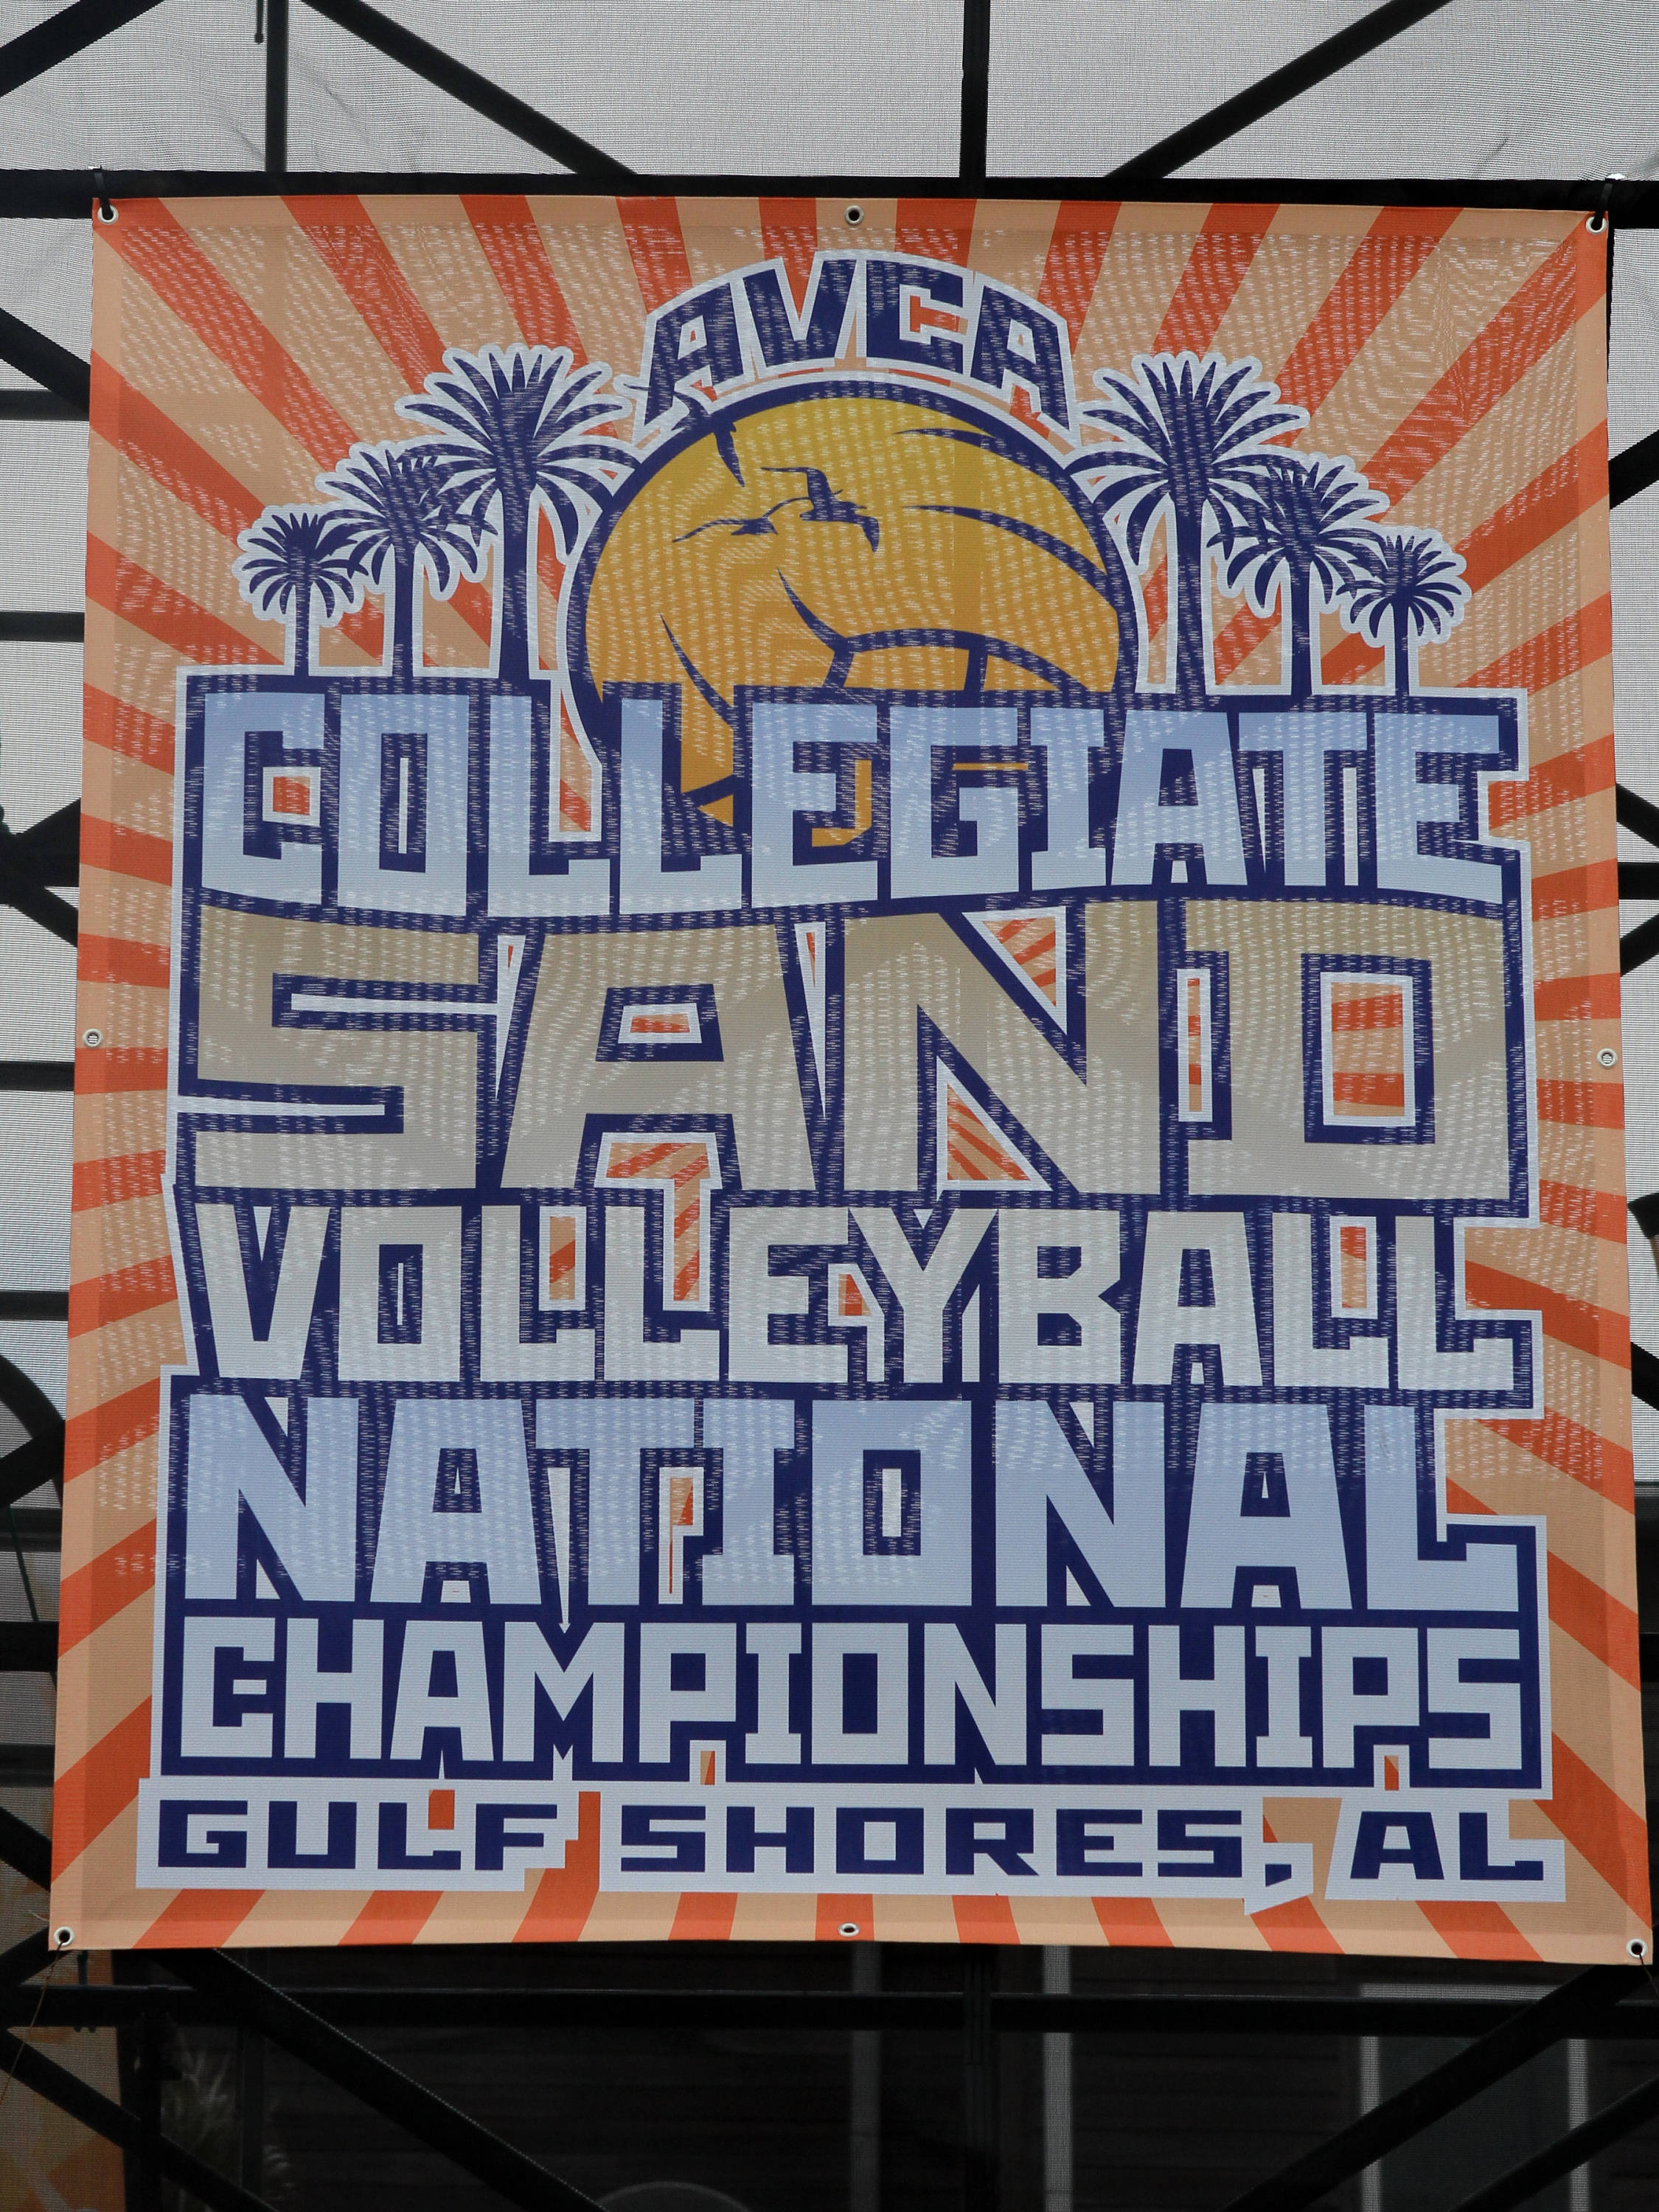 AVCA Collegiate Sand Volleyball National Championships,  Gulf Shores, Alabama,05/03/13 . (Photo by Steve Musco)